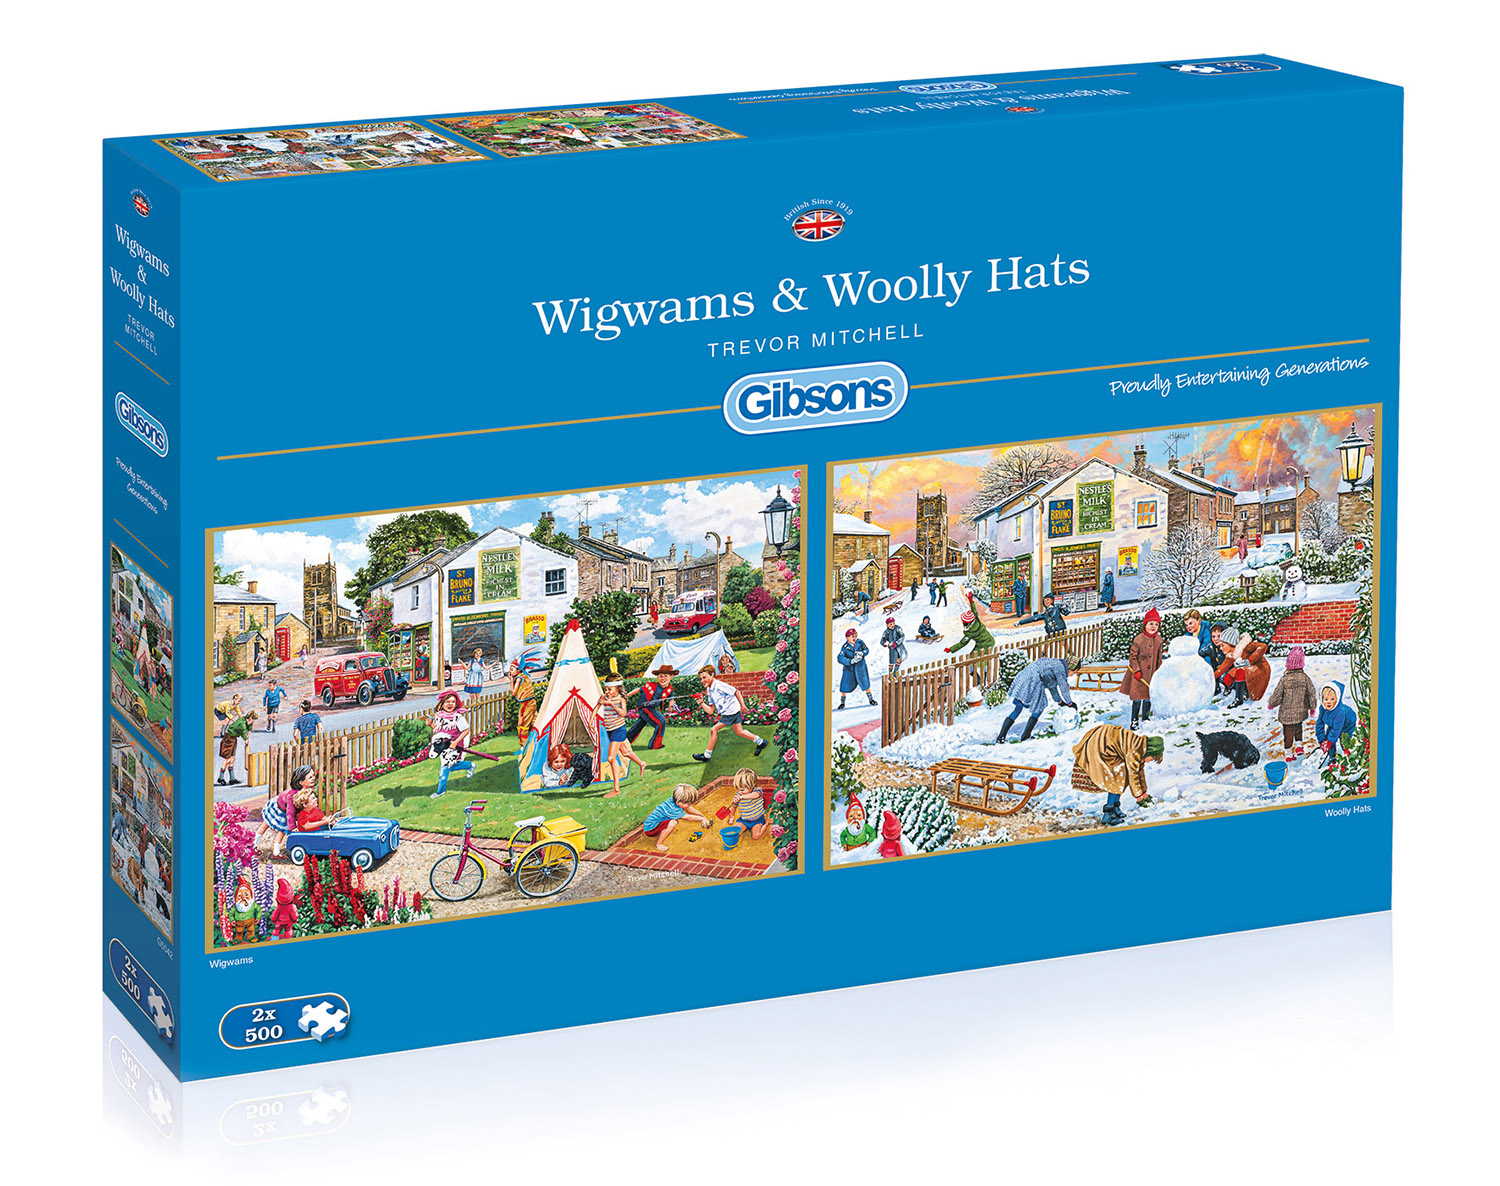 Wigwams & Woolly Hats